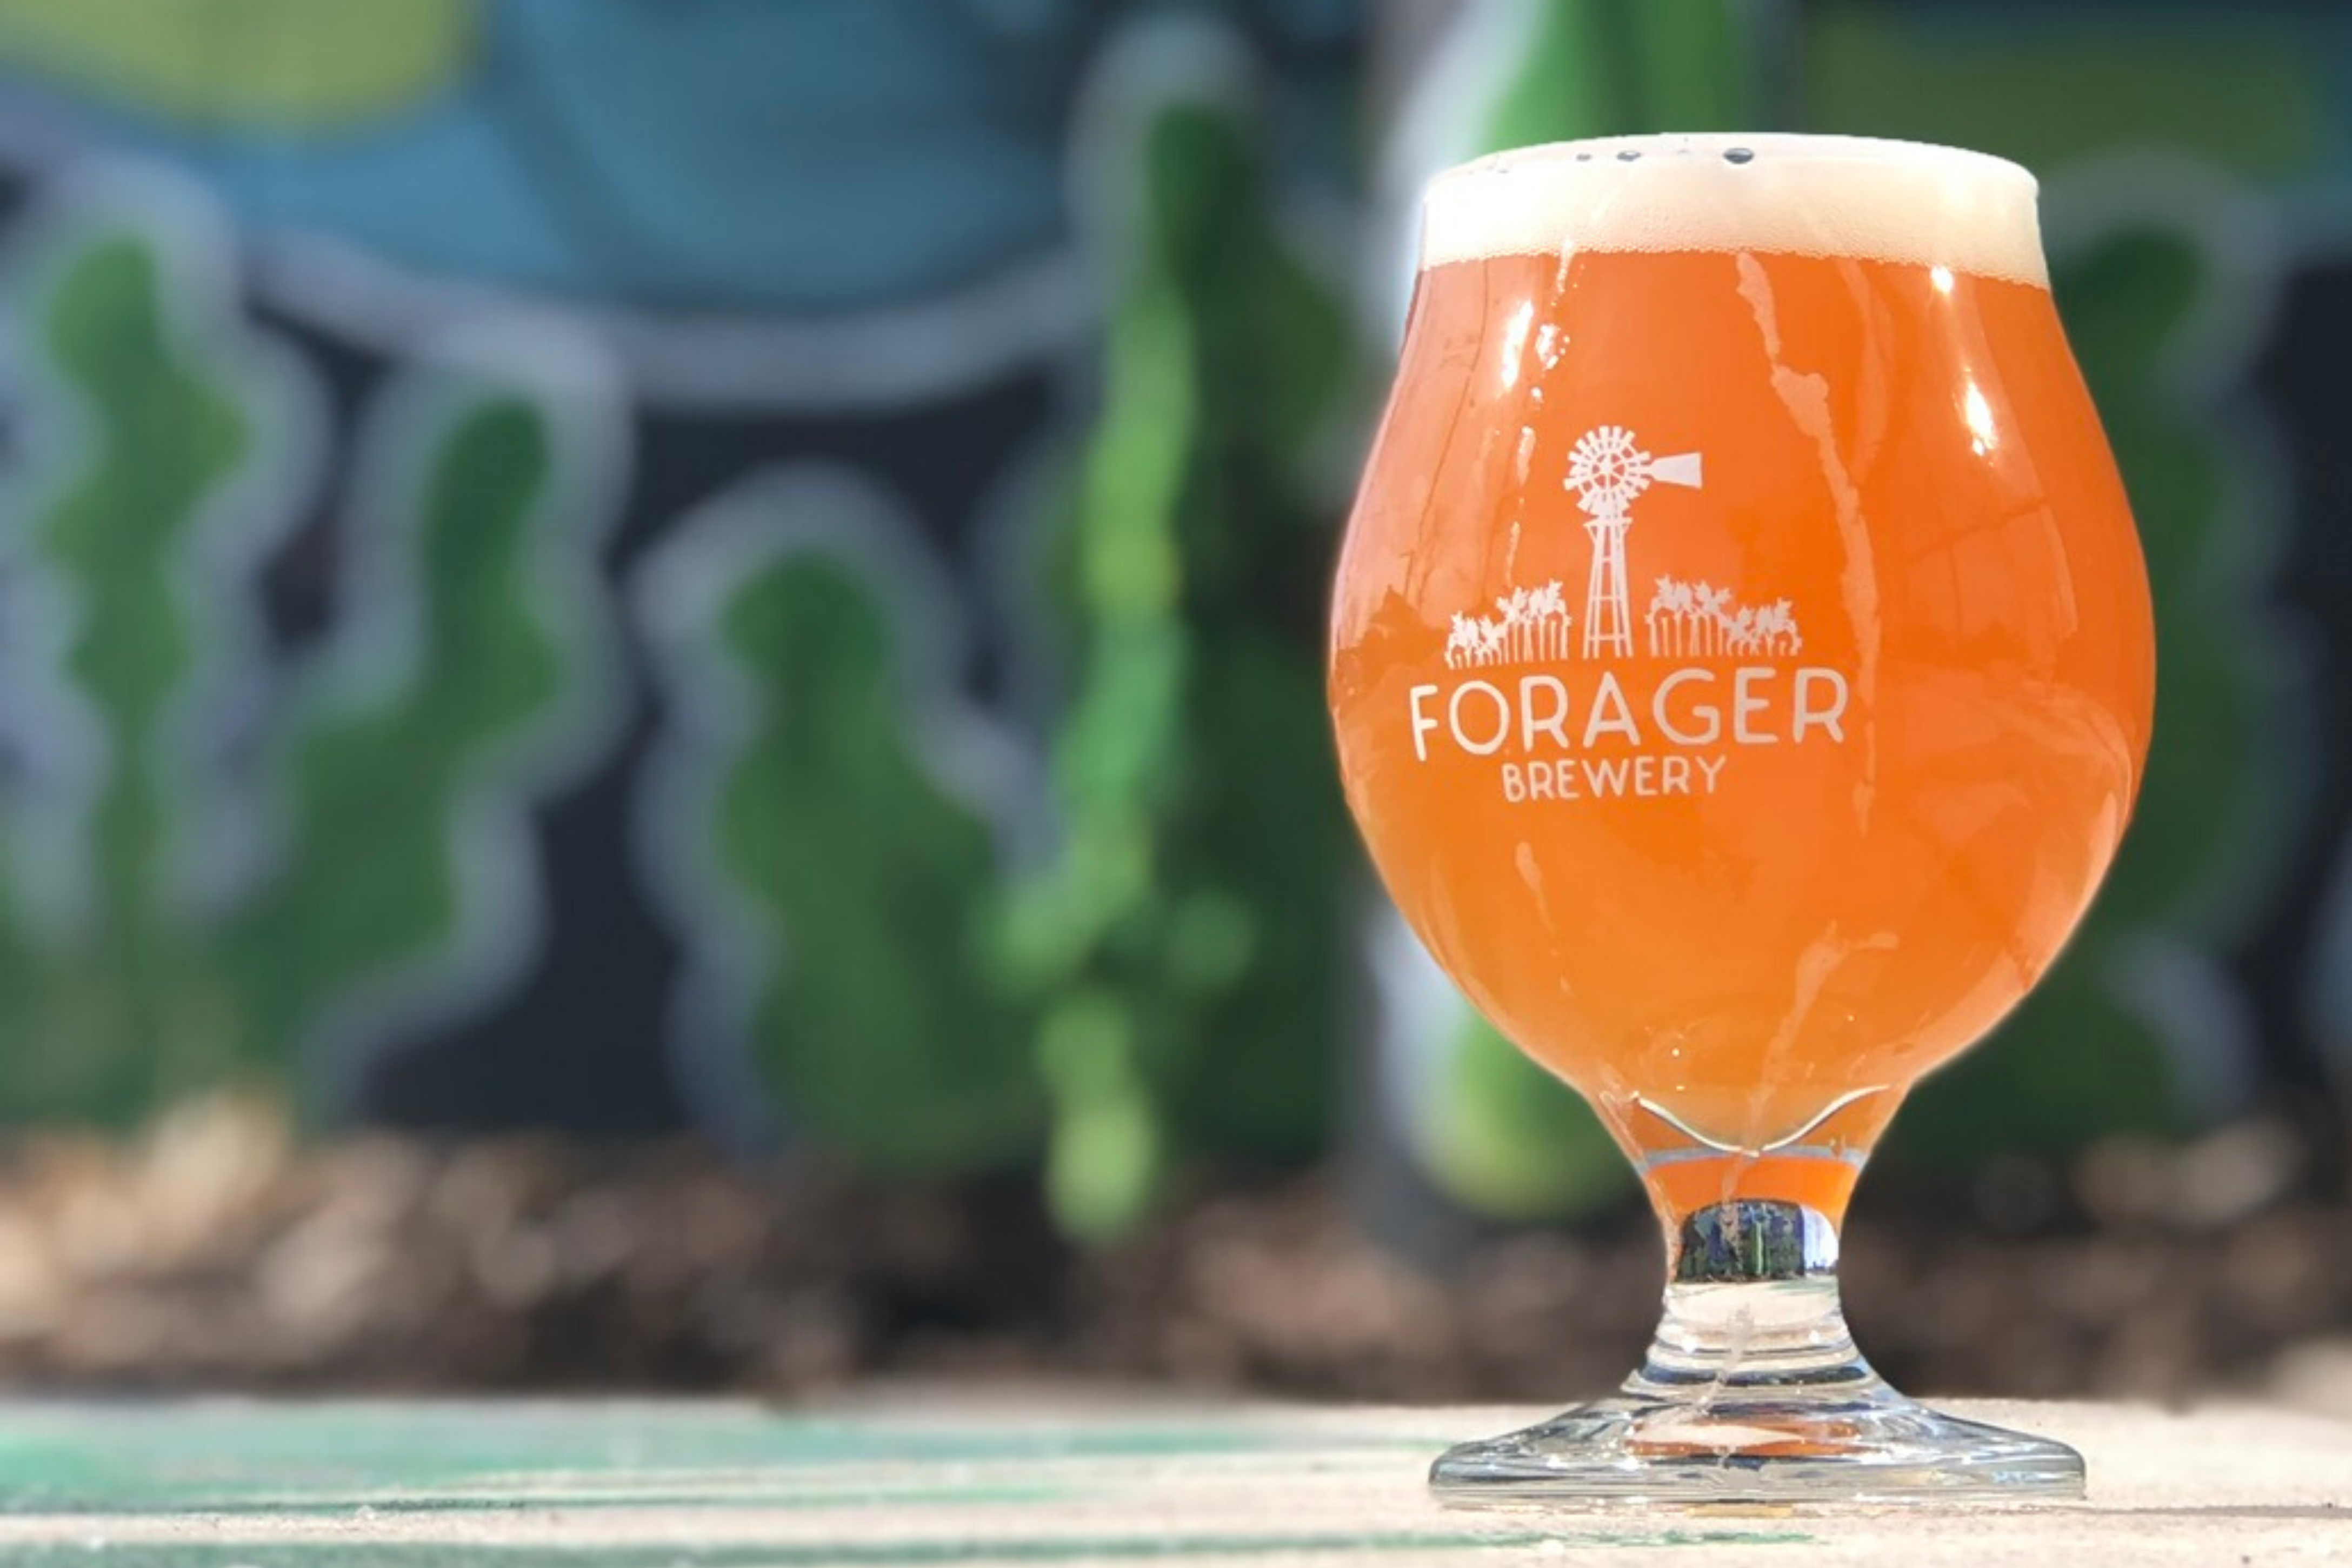 Restarurants Open Christmas Eve And Day 2020 Rochester Mn Restaurant and Brewery| Rochester, Mn | Forager Brewing Company